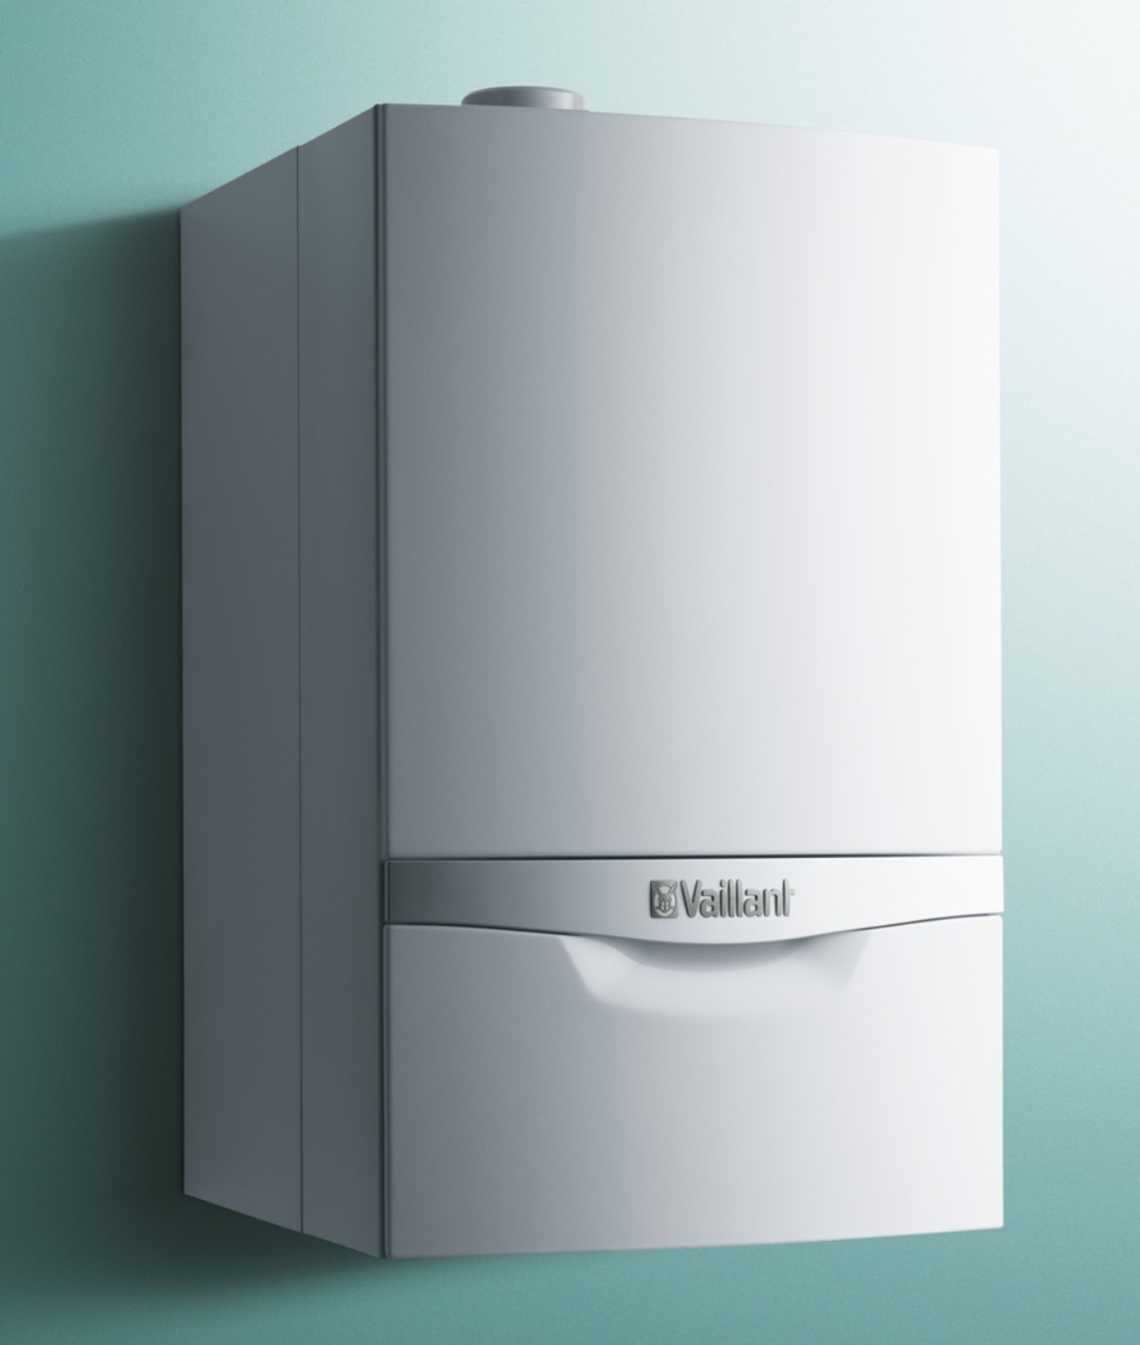 Газовий котел Vaillant ecoTEC Plus VU 486/5-5 (H-INT IV) - Теплоцентр